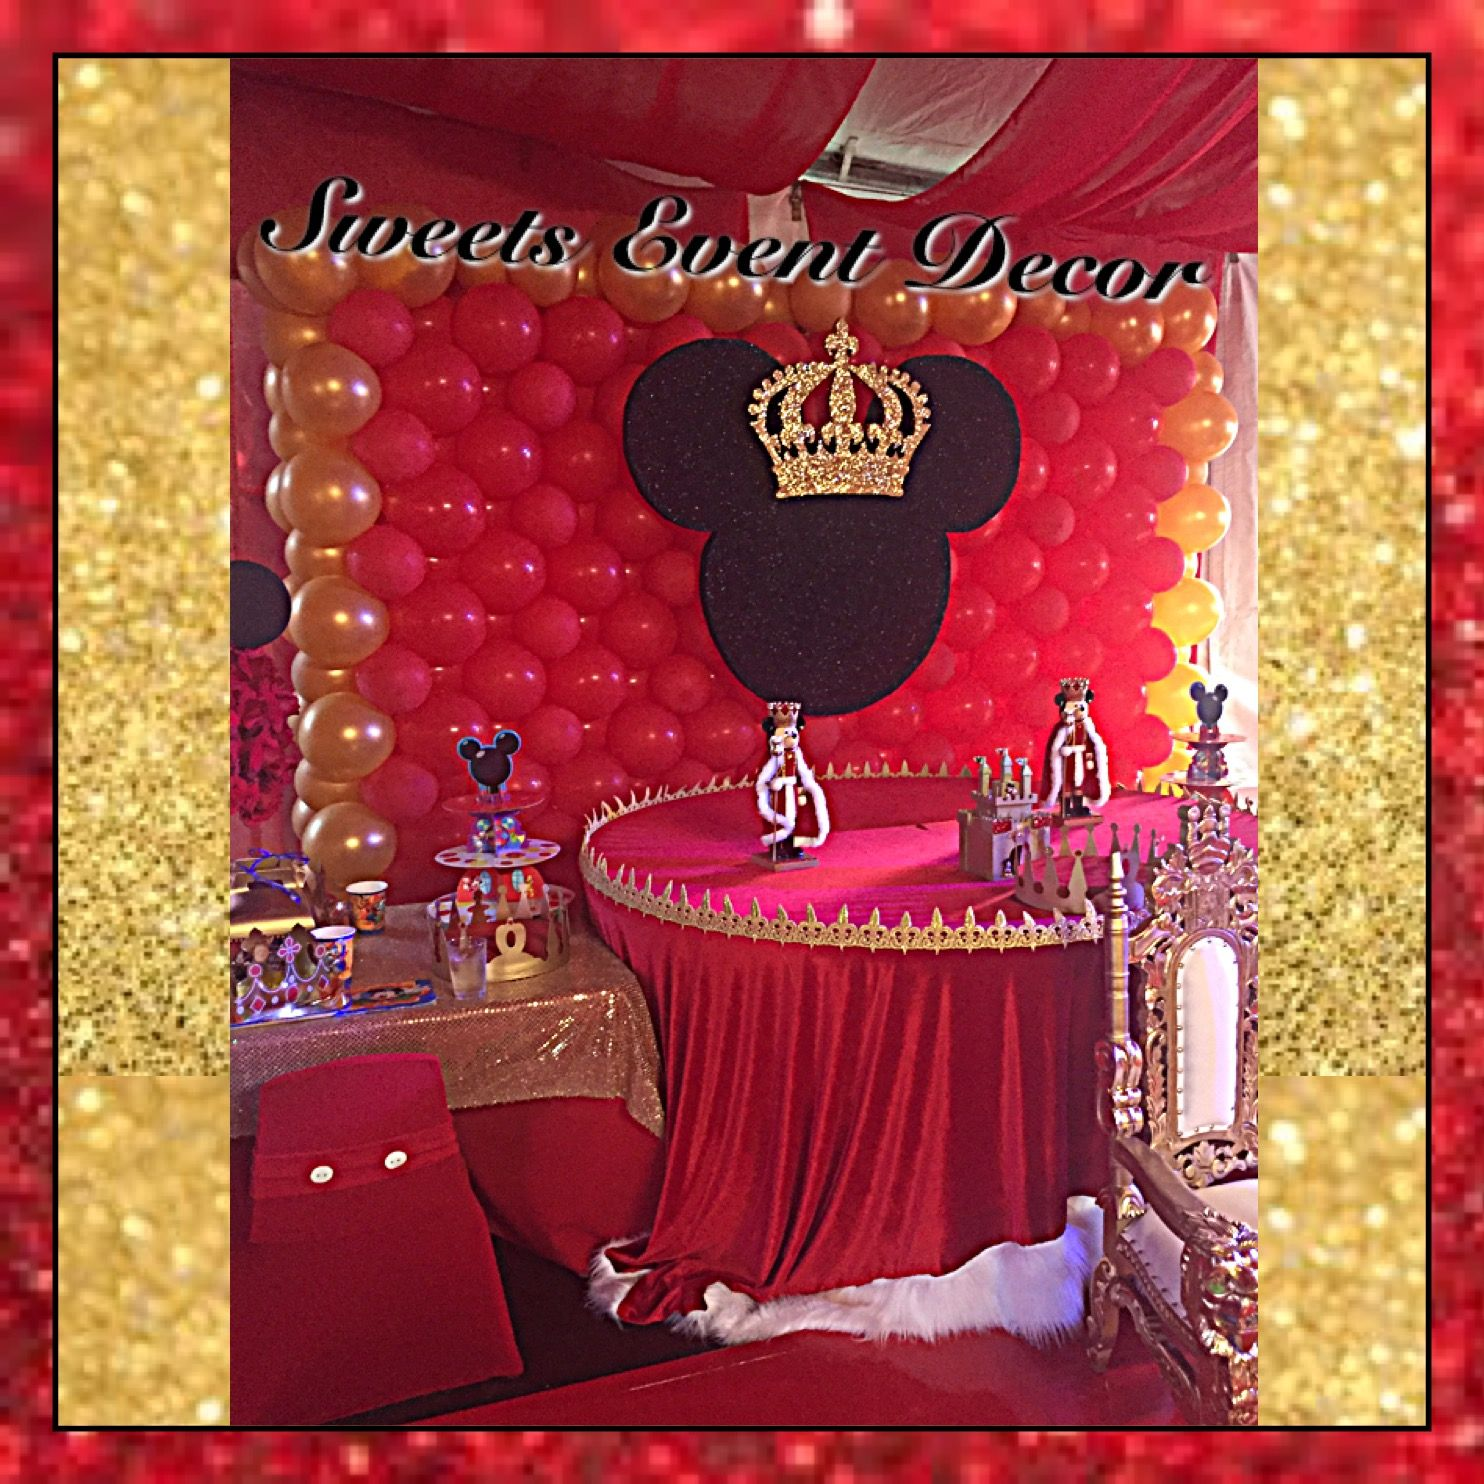 royal prince mickey mouse decor by: sweets event decor|floral